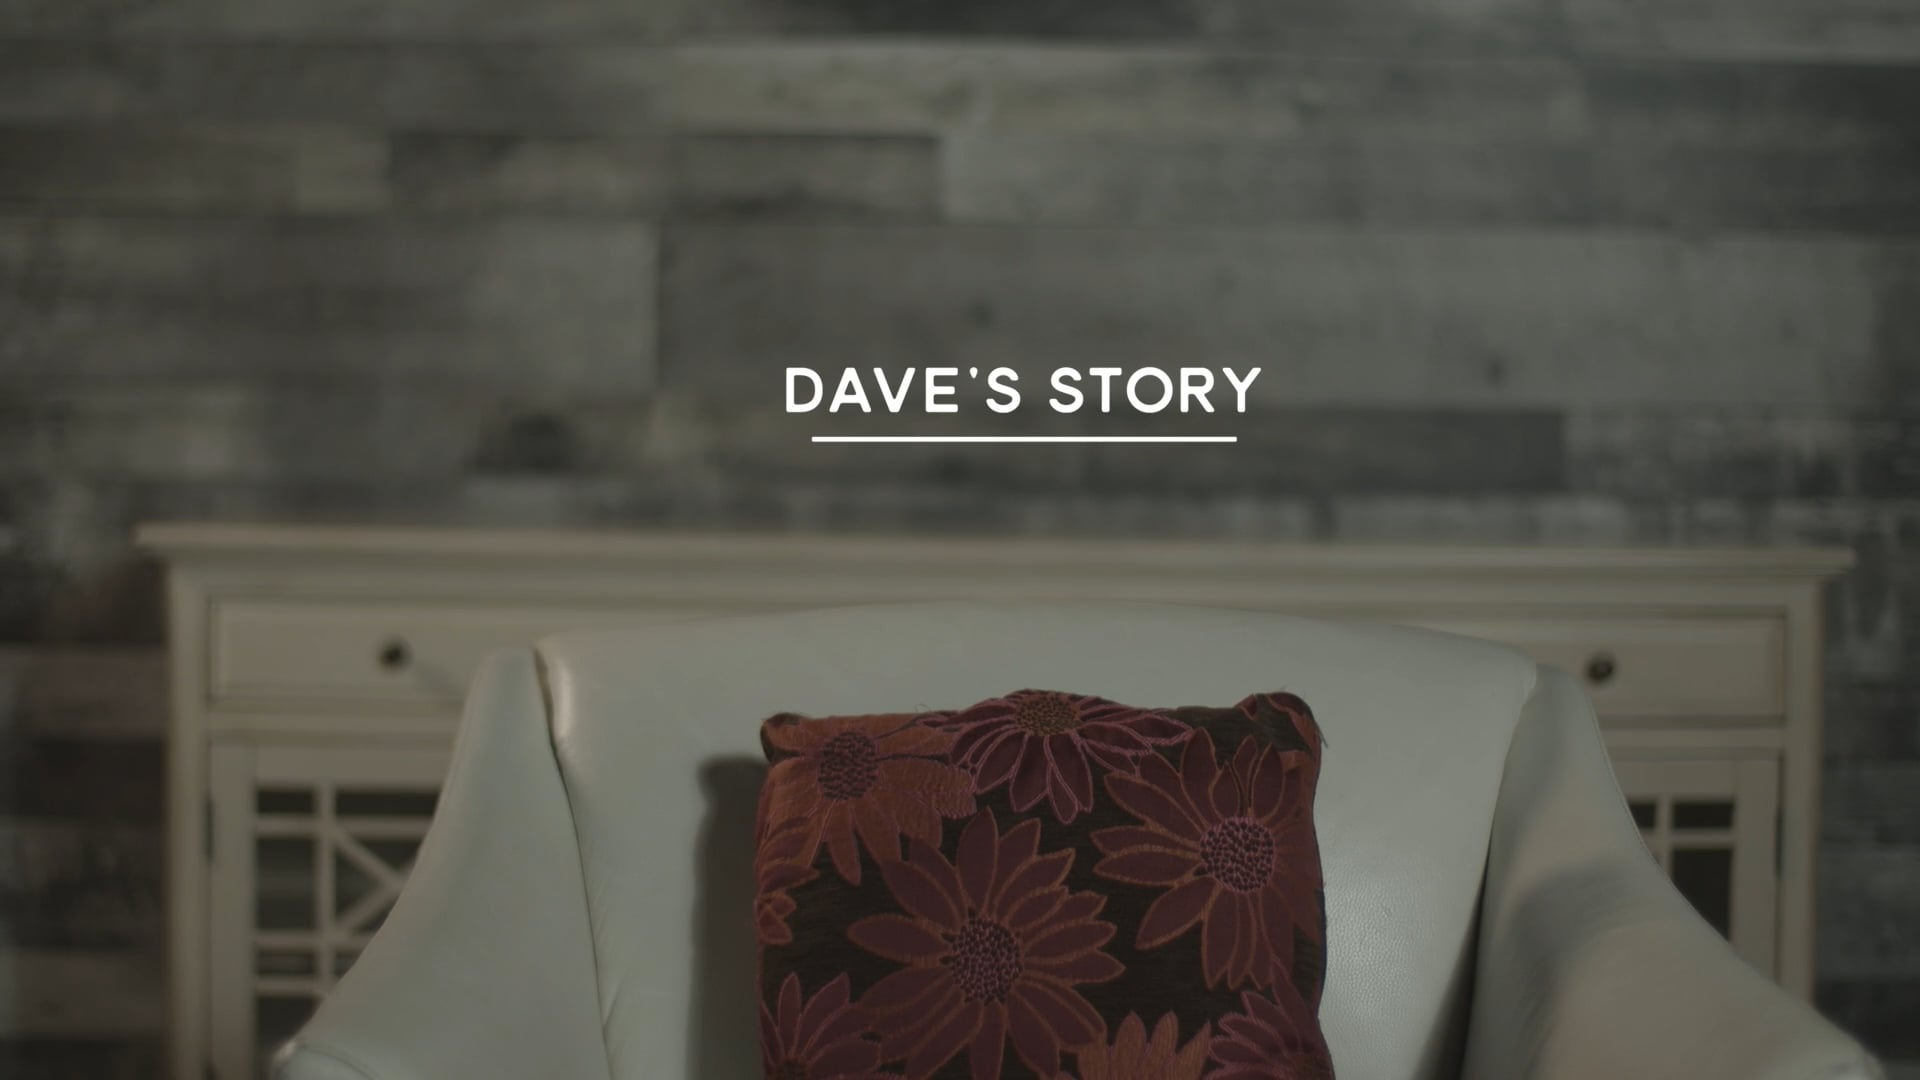 Dave's Story